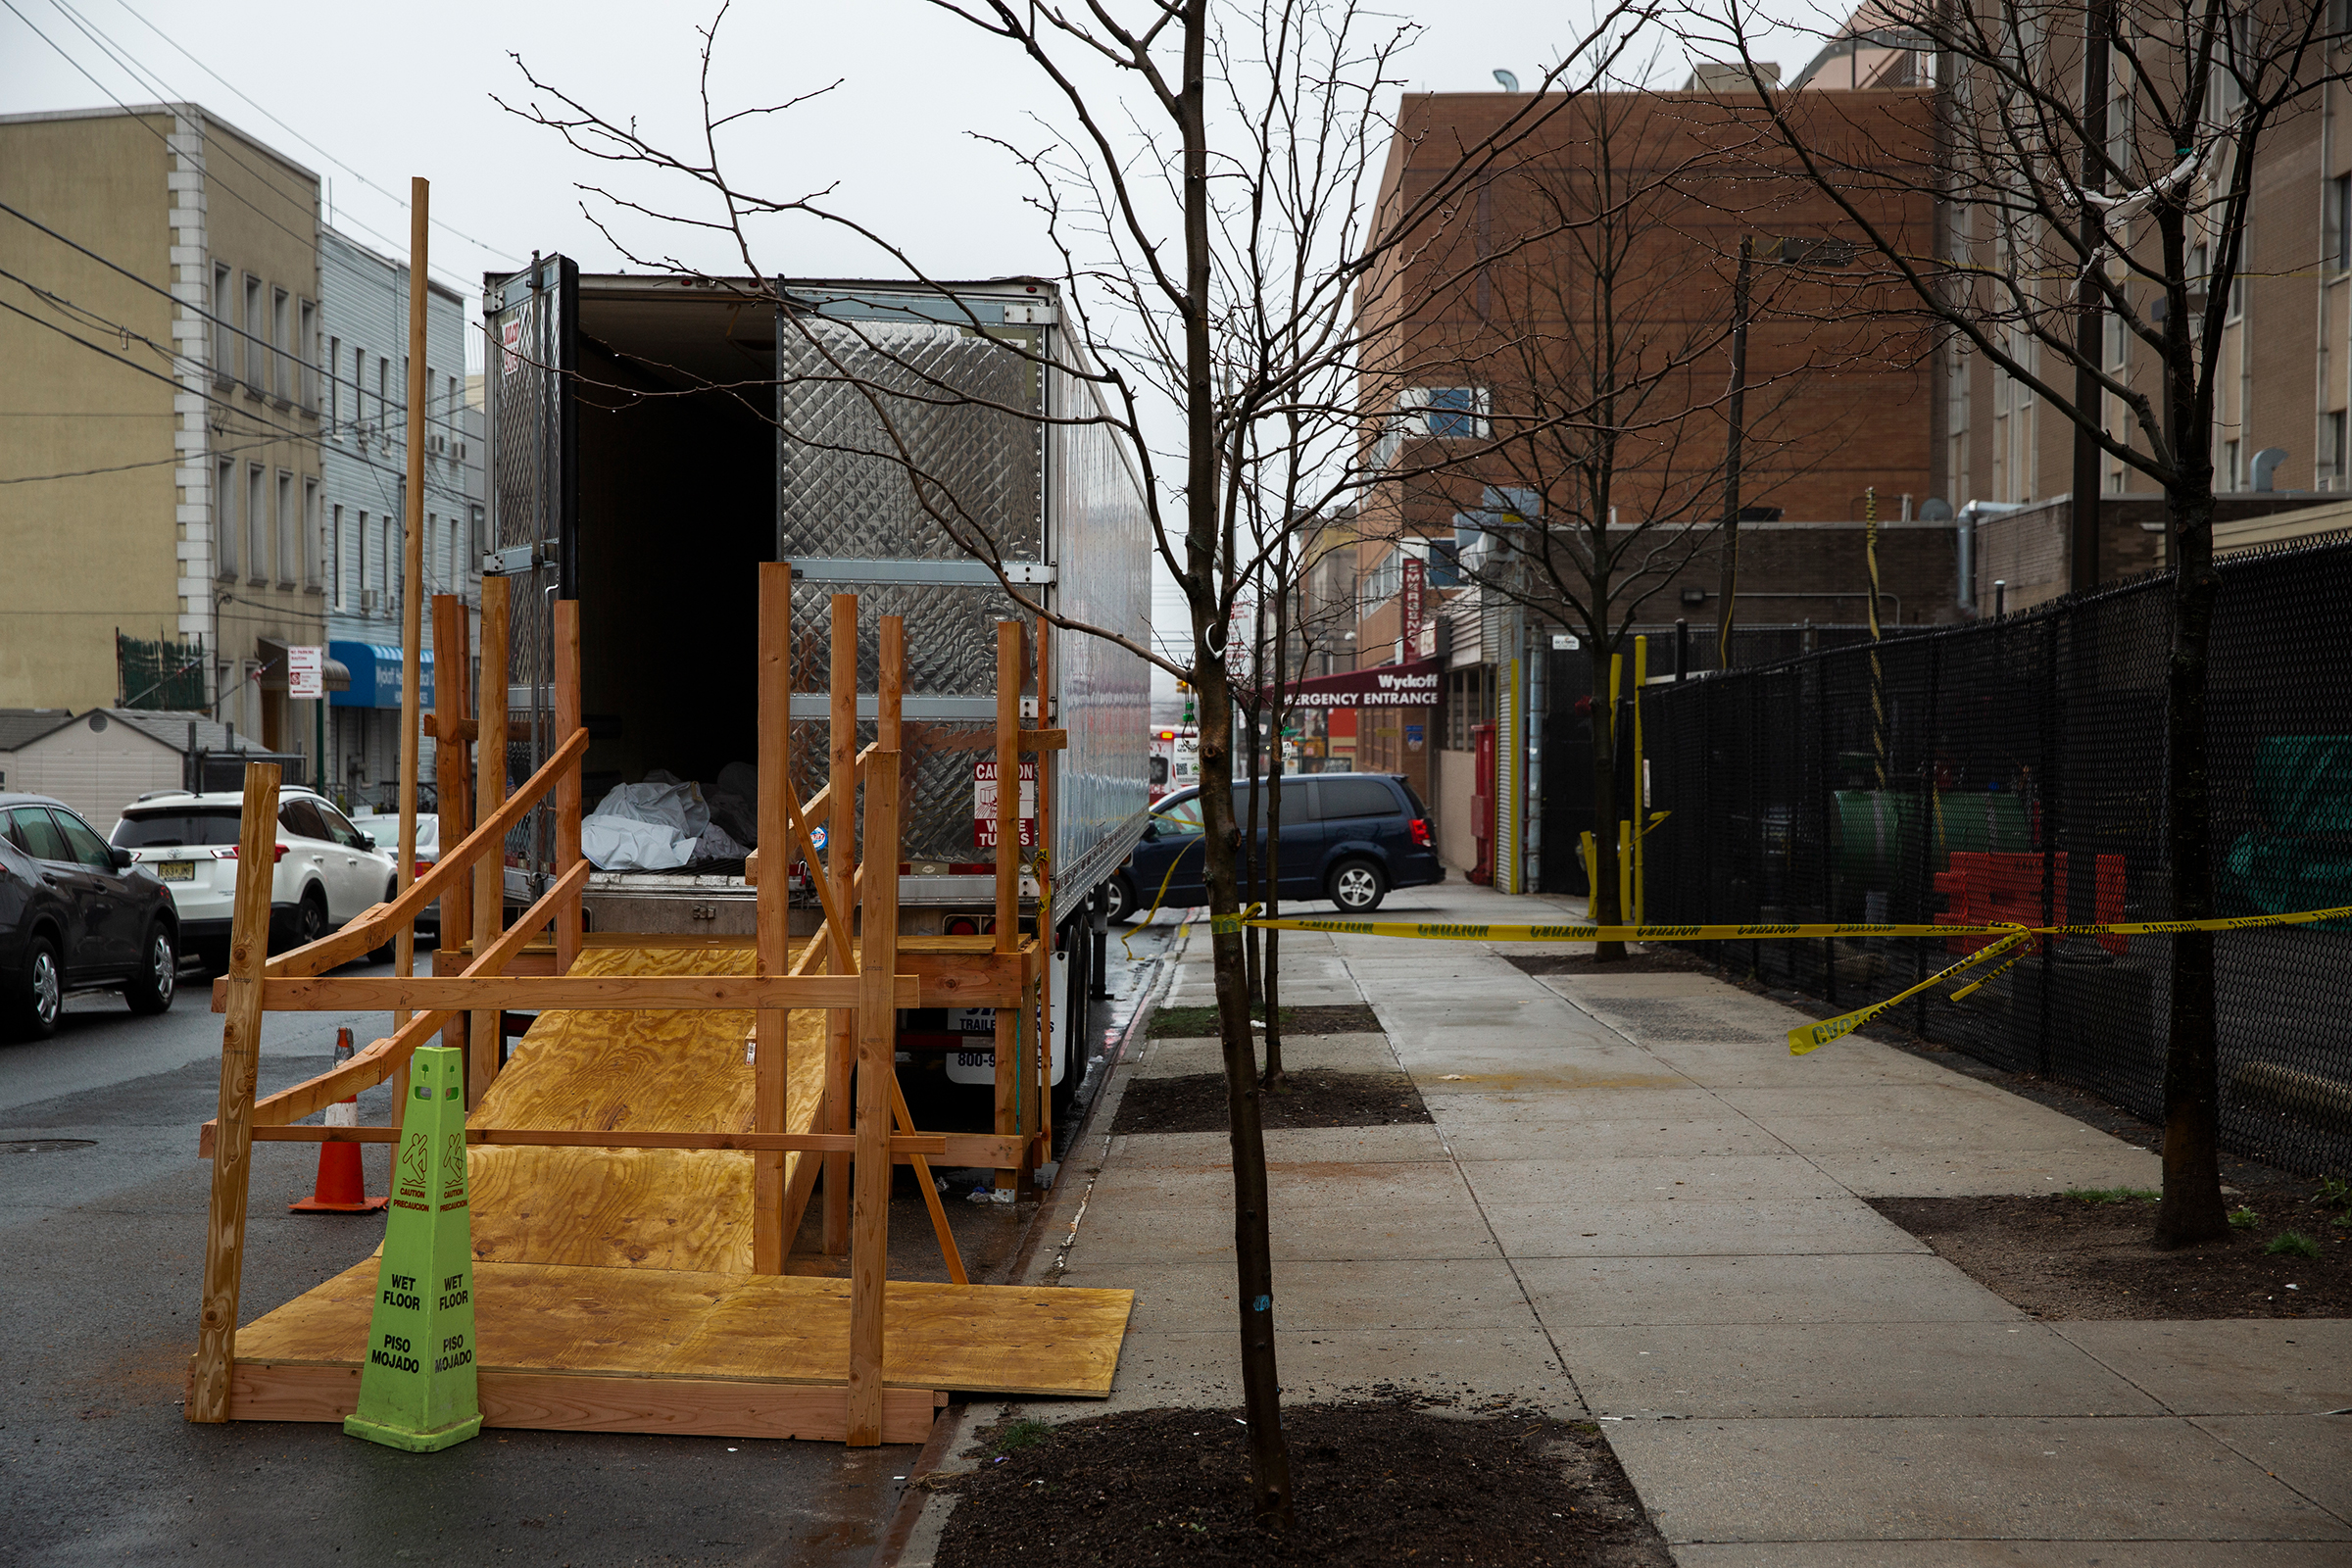 A covered body is seen in the back of a temporary morgue erected outside Wyckoff Heights Medical Center in Brooklyn, New York, on March 29, 2020.